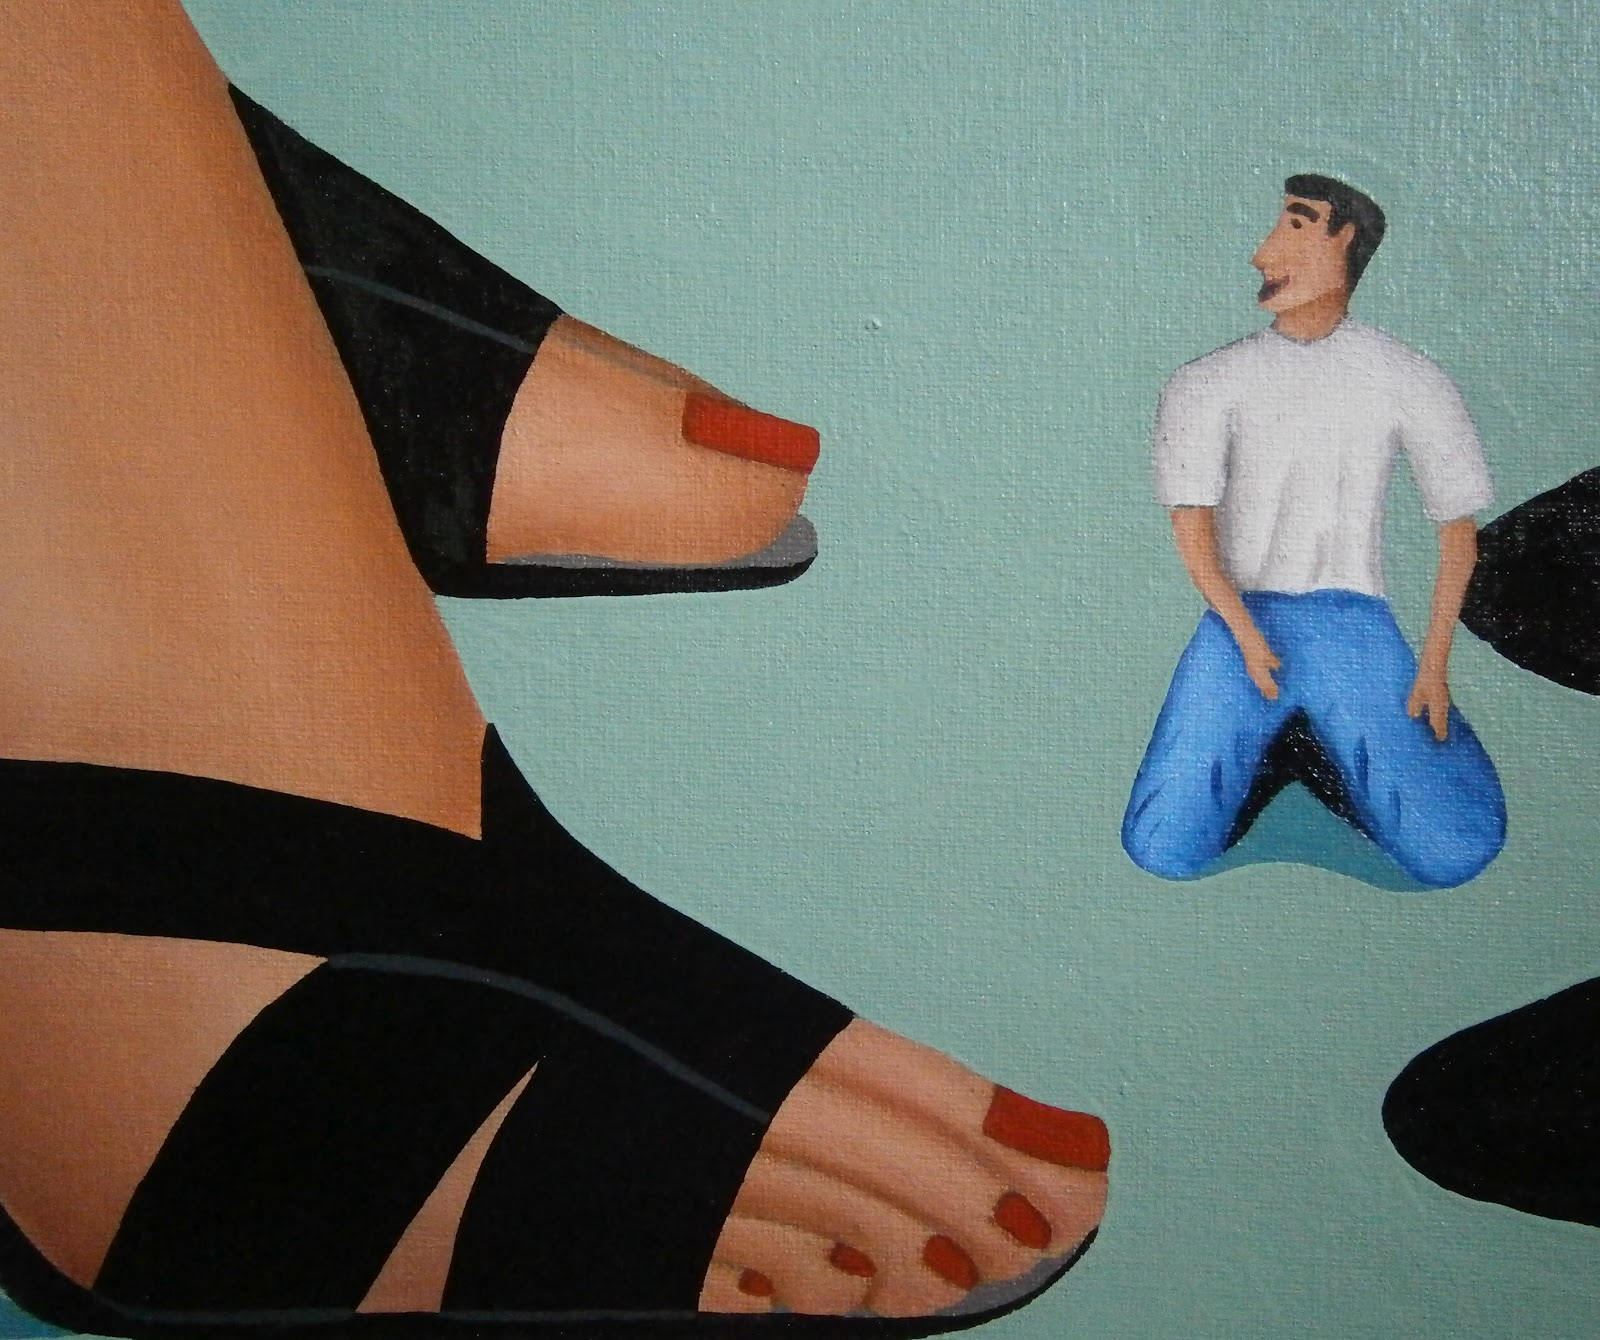 Shrunken man in shoe thorpe s paintings of legs feet and shoes